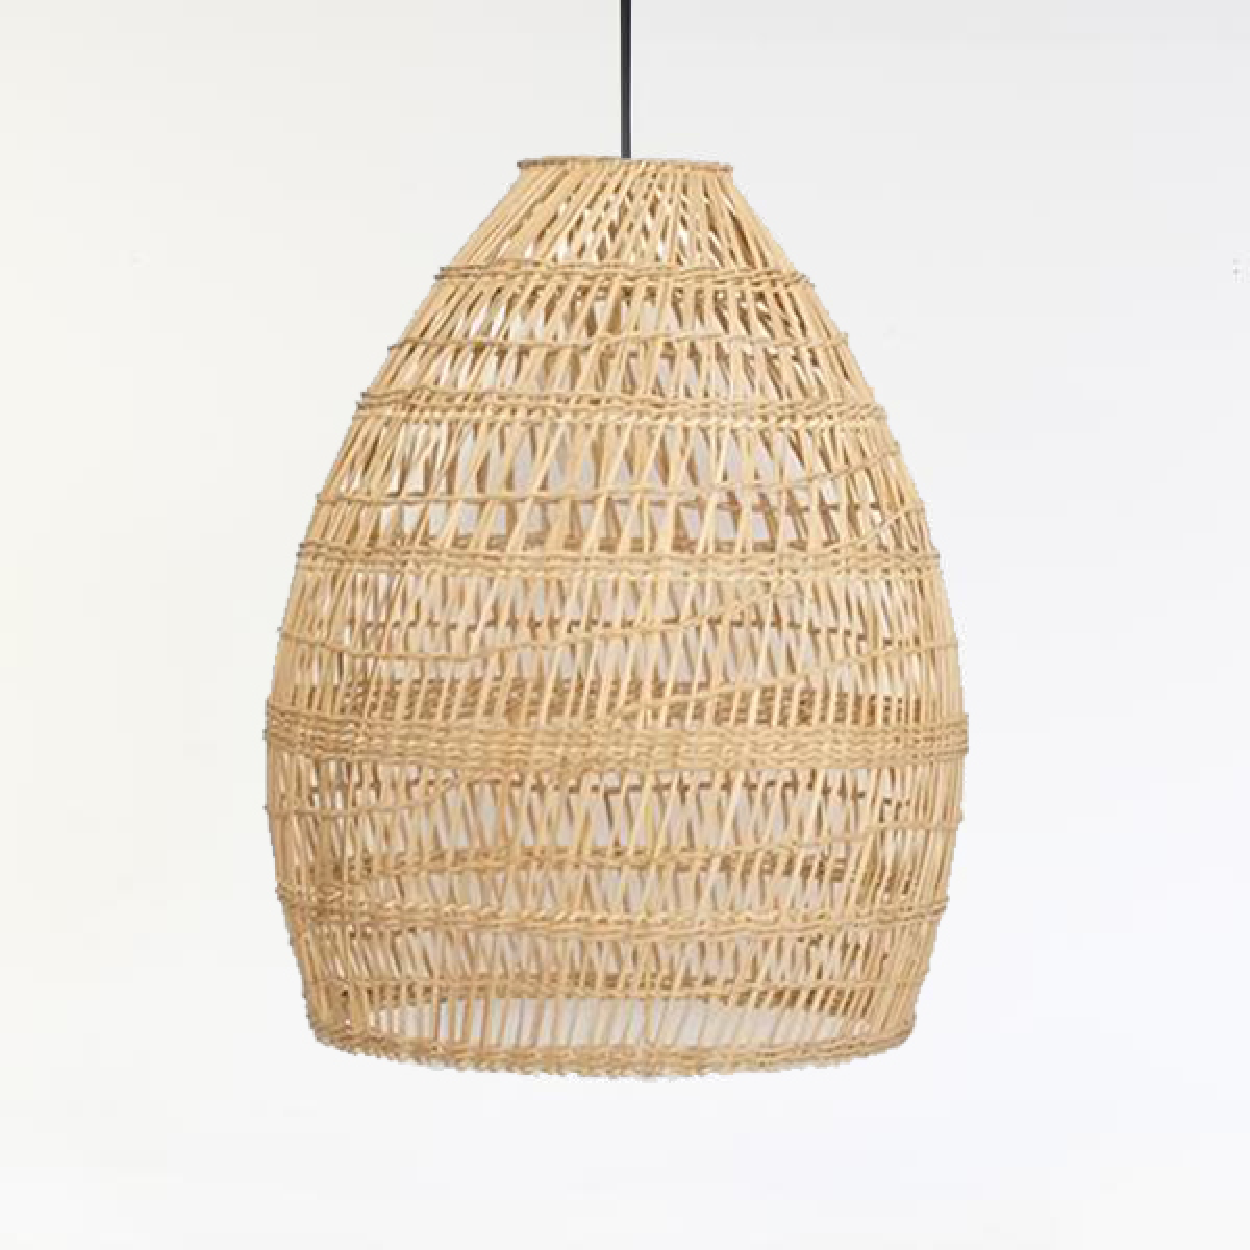 Rattan Lampshade - Natural